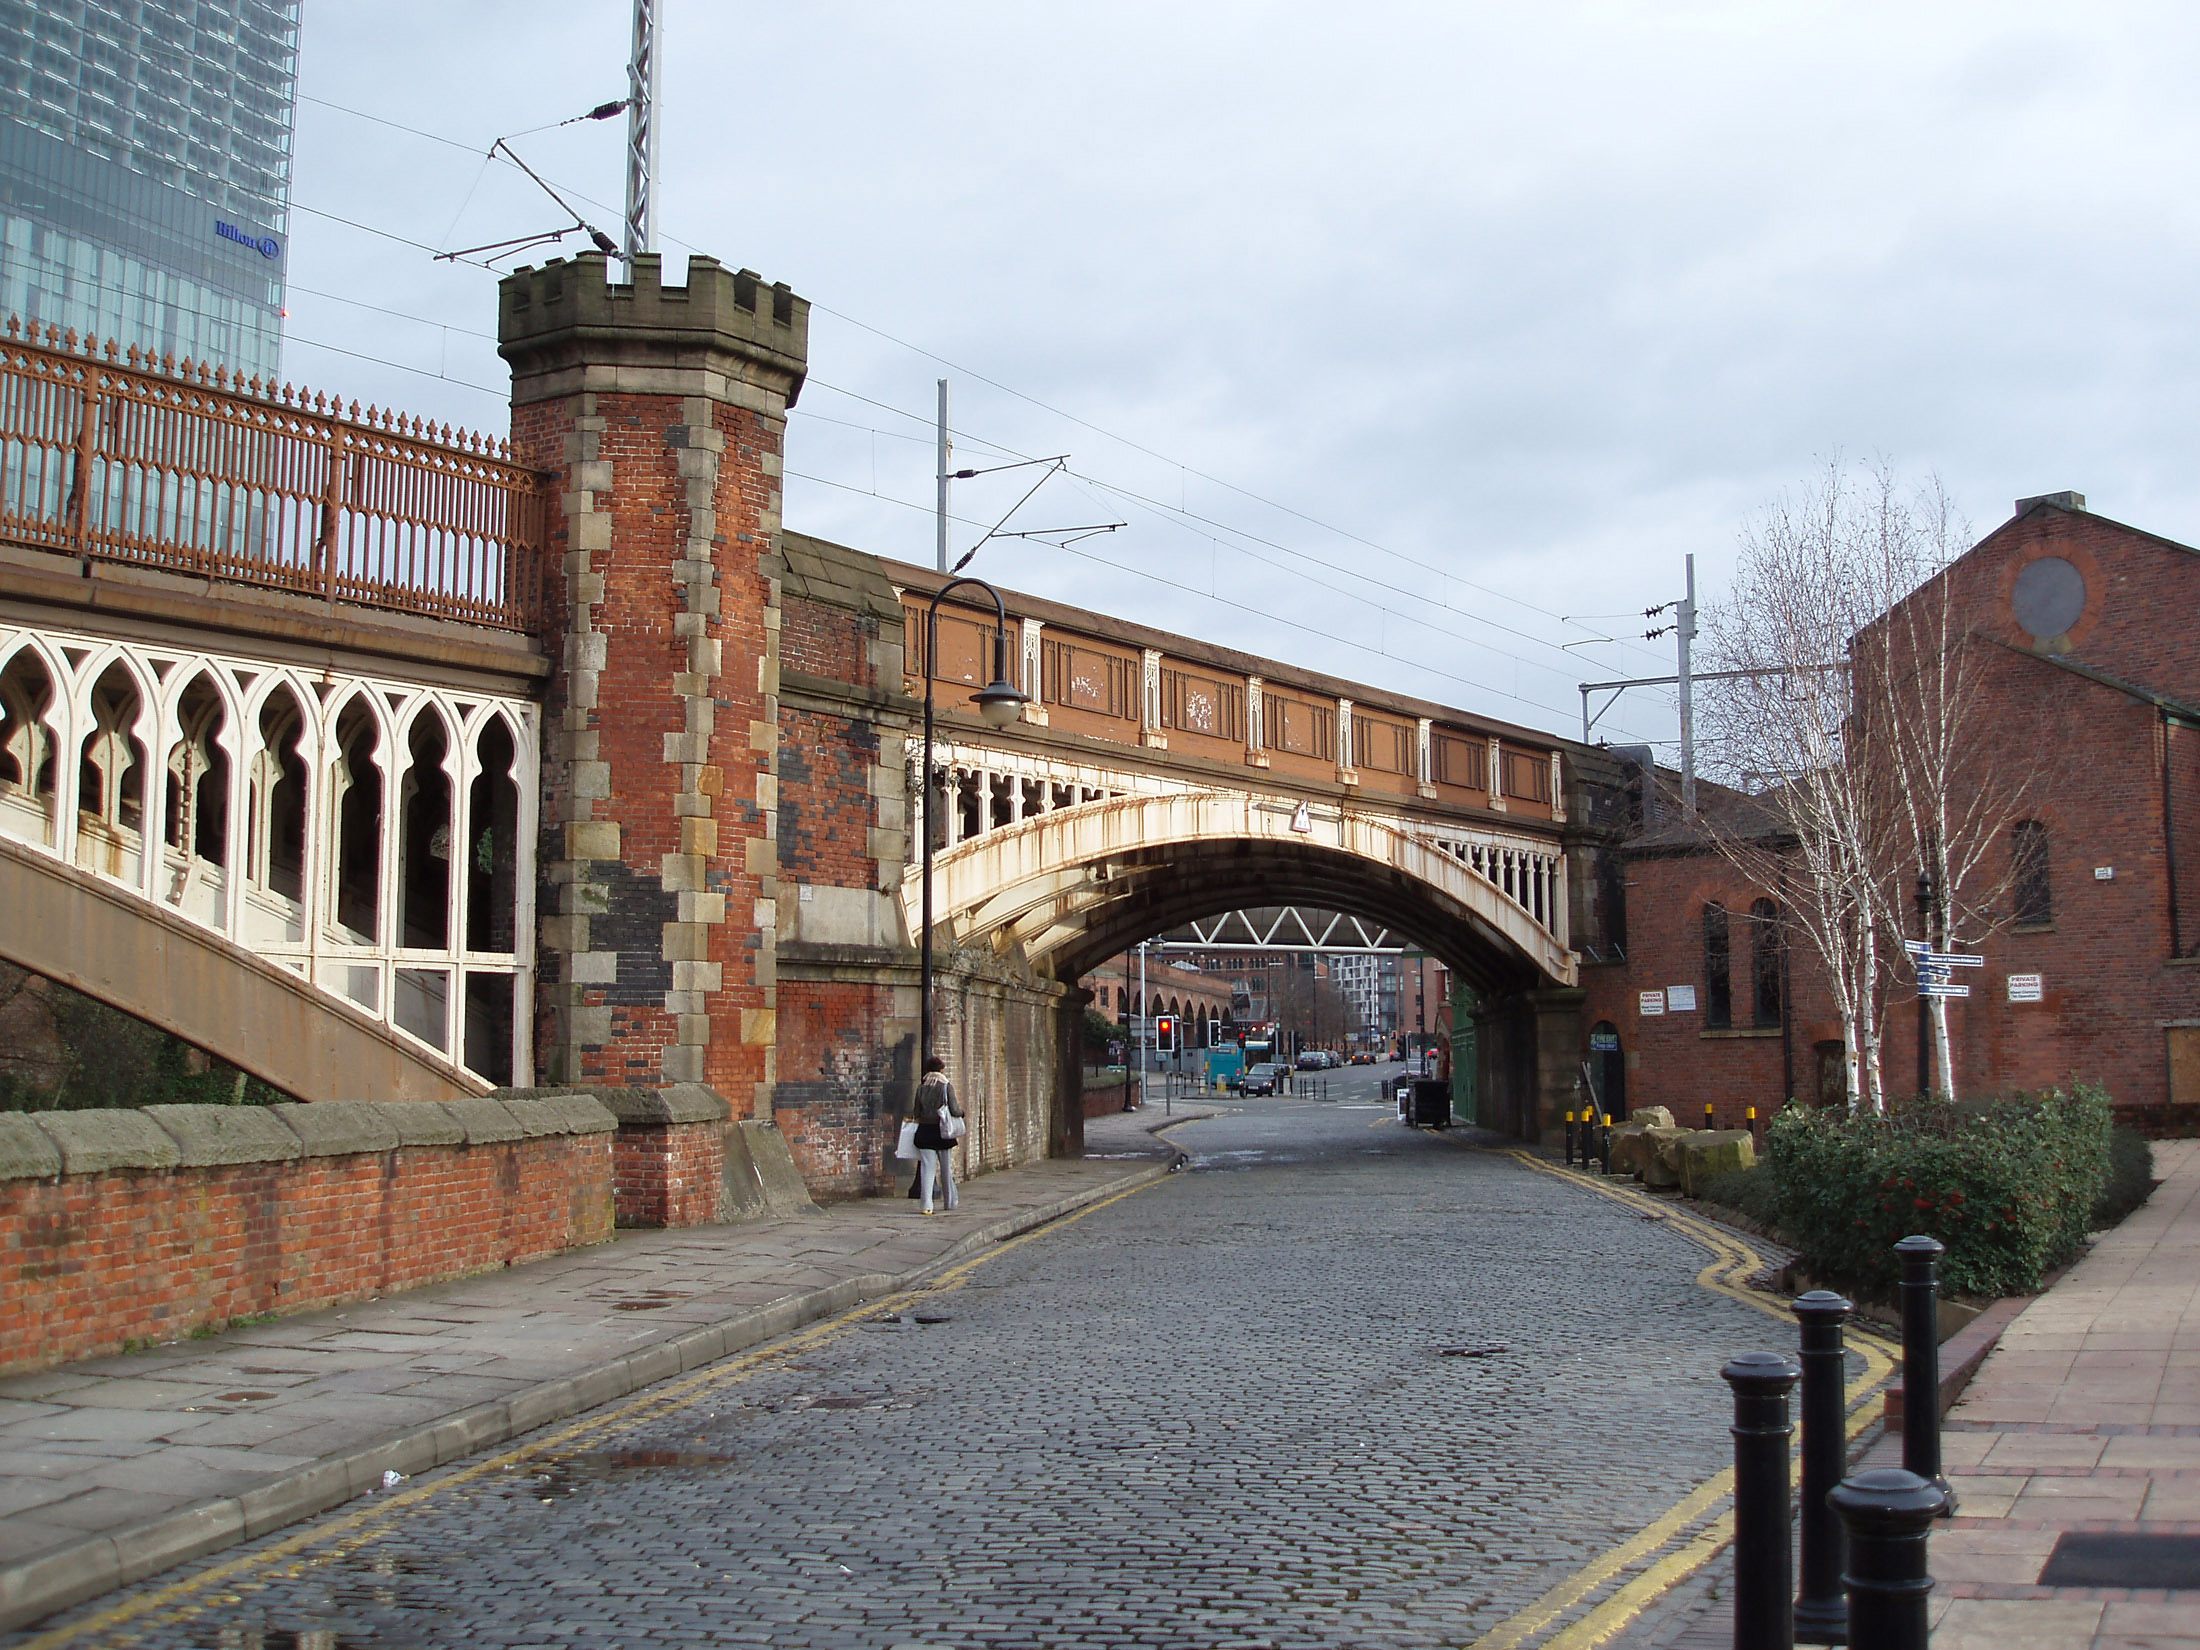 Castlefield, Manchester is an inner city conservation area that was the site of the ancient Mancunium Roman fort and the first Industrial Canal and warehouses